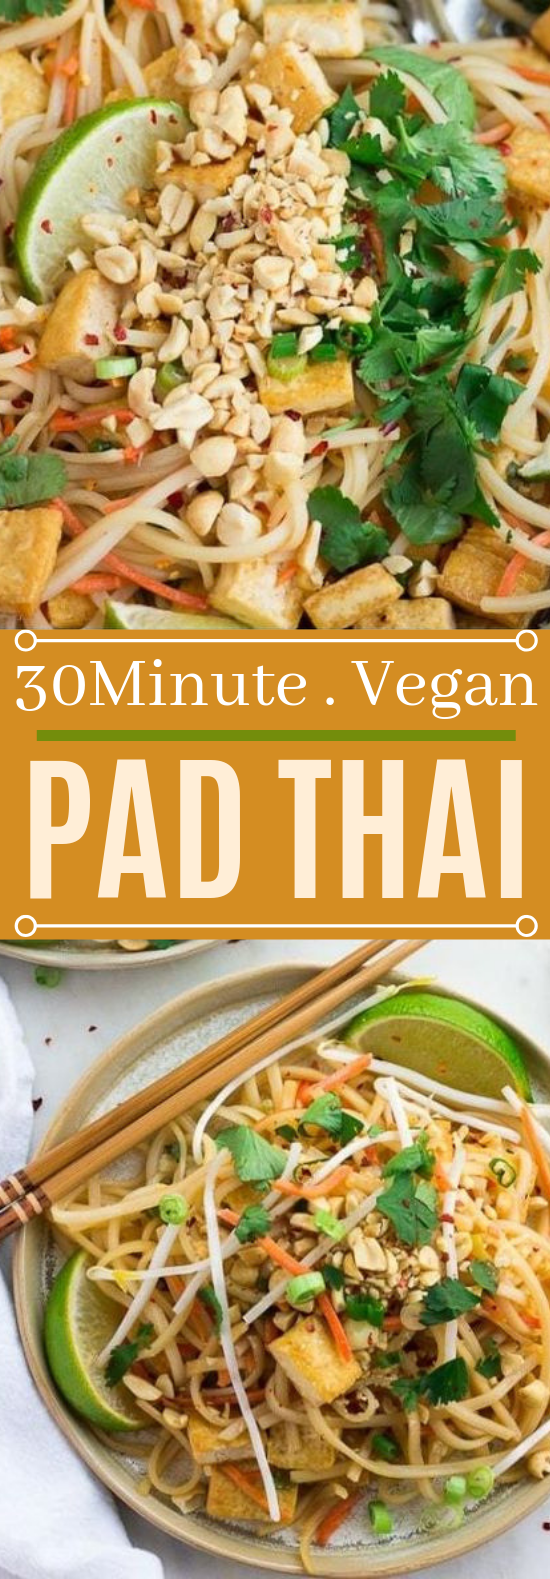 30 Minute Vegan Pad Thai #vegan #glutenfree